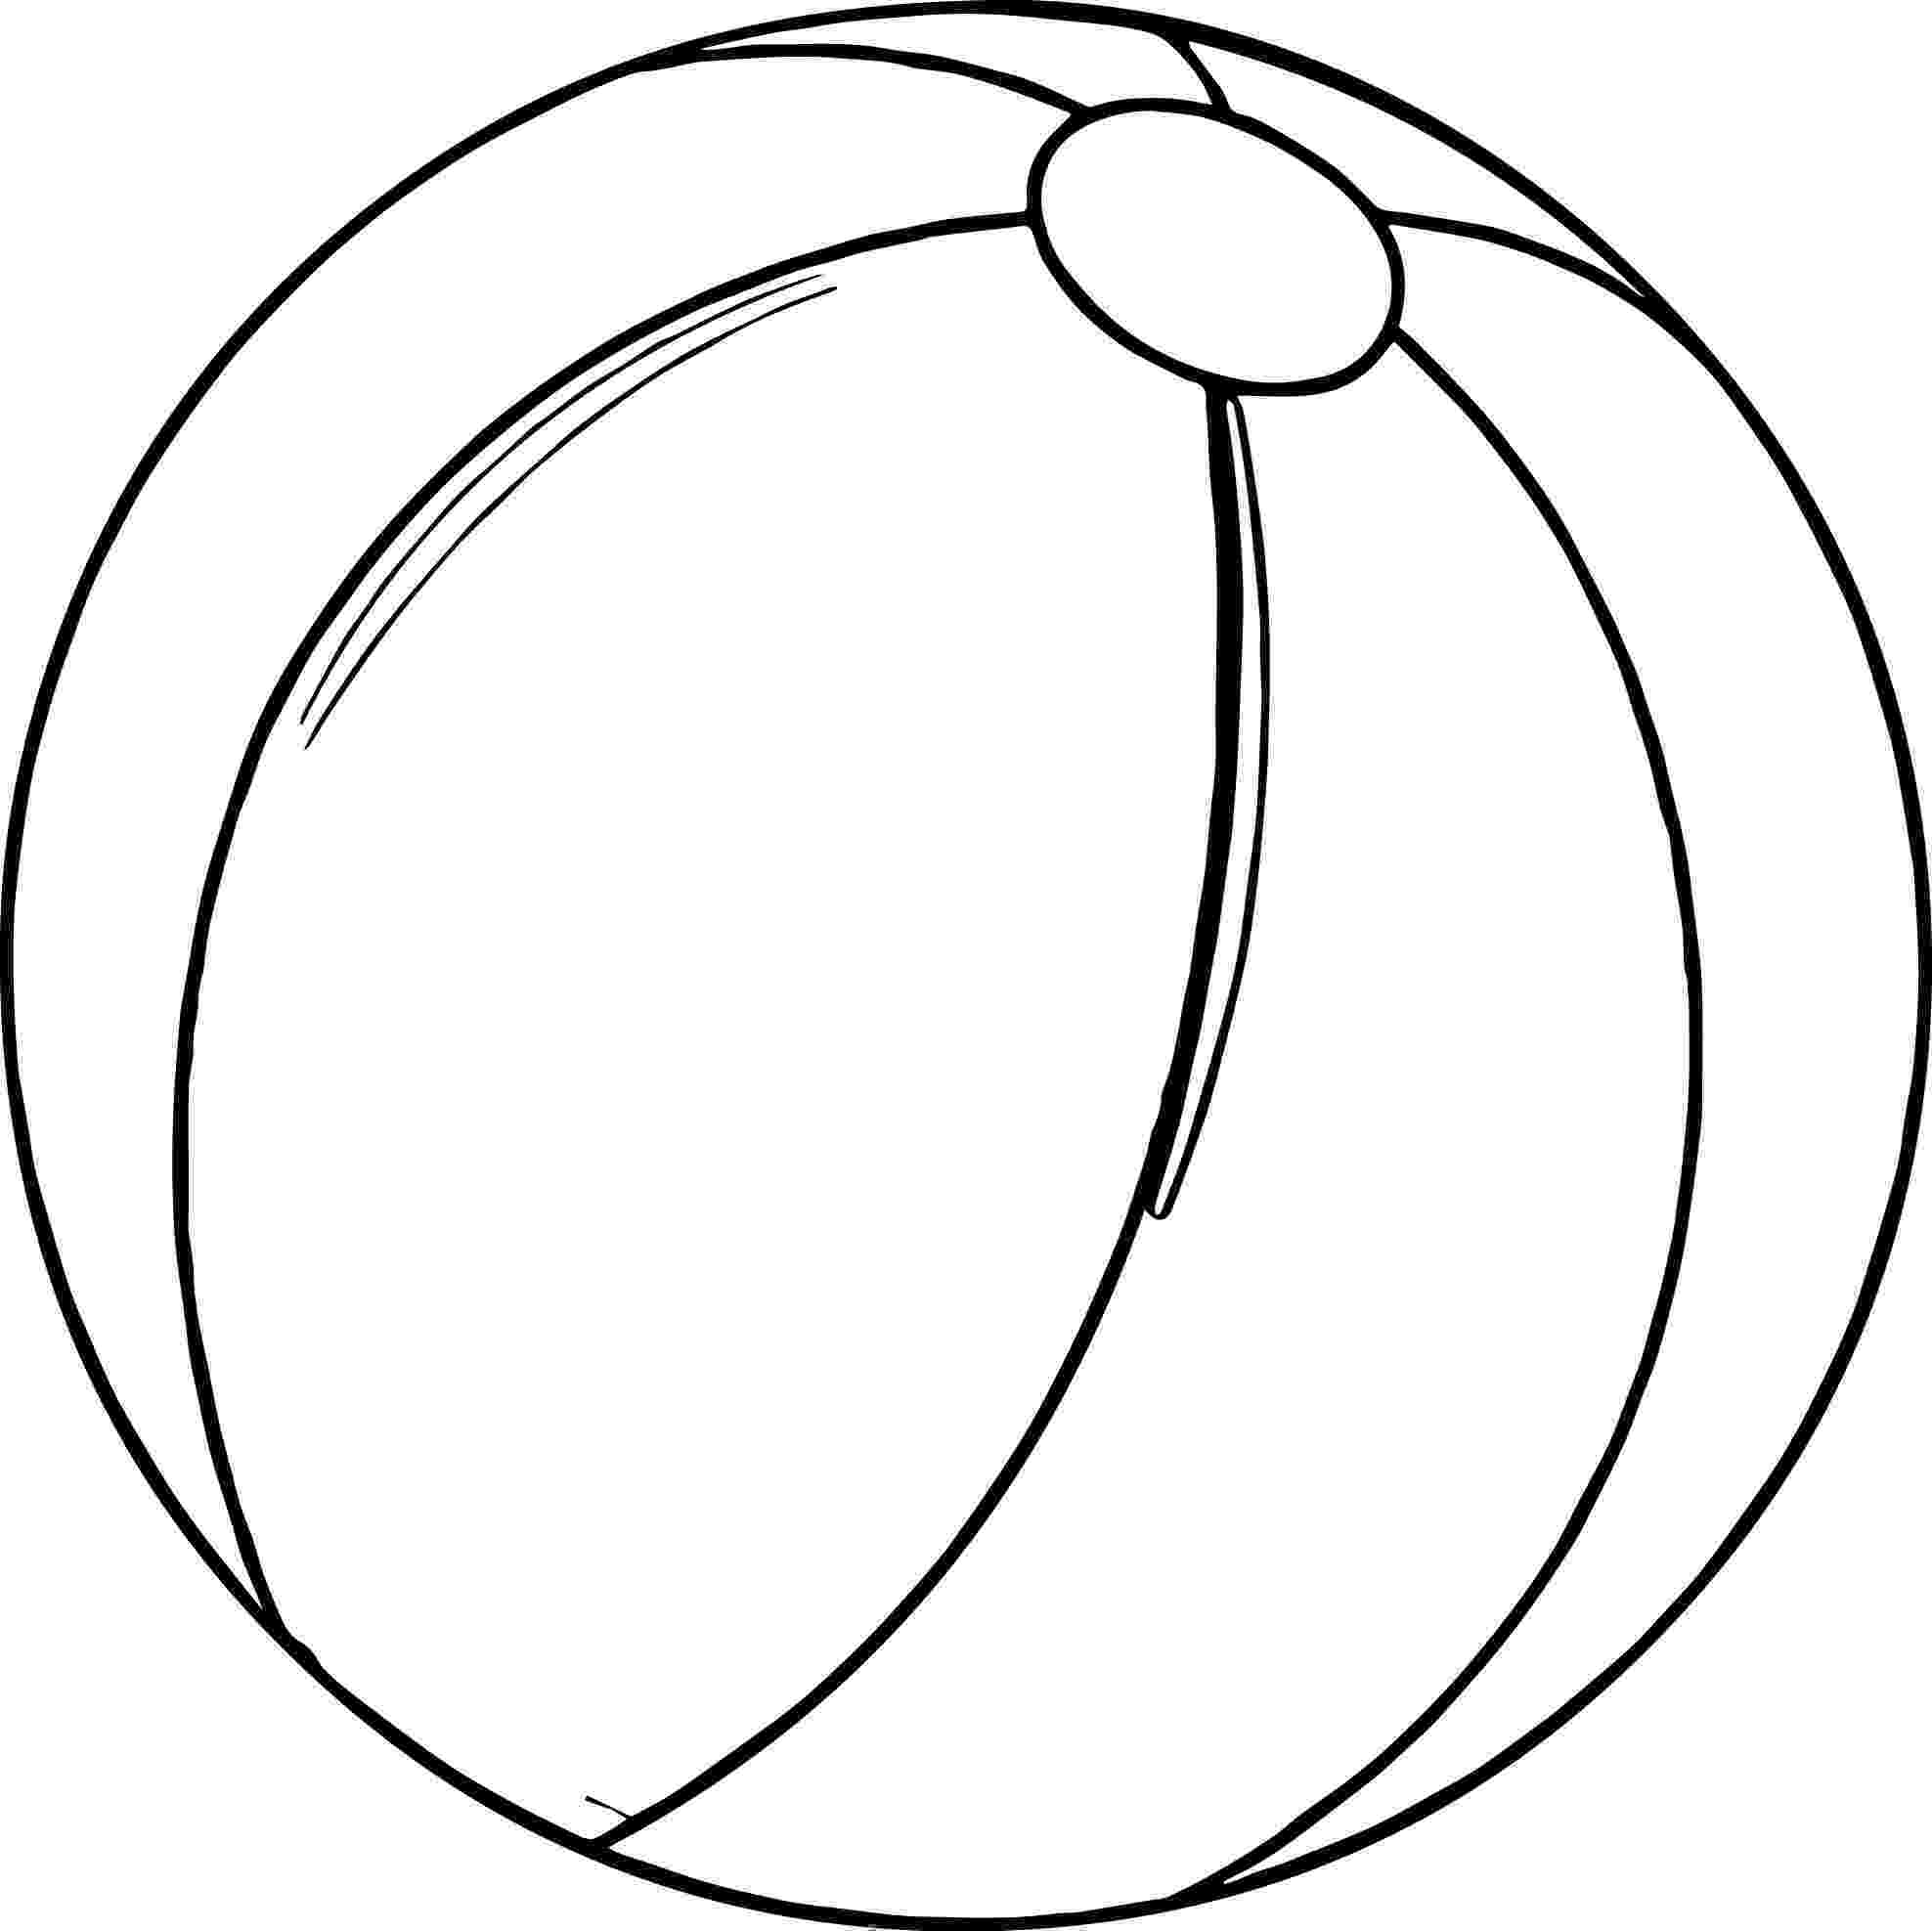 ball coloring pages beach ball coloring page print color fun ball coloring pages